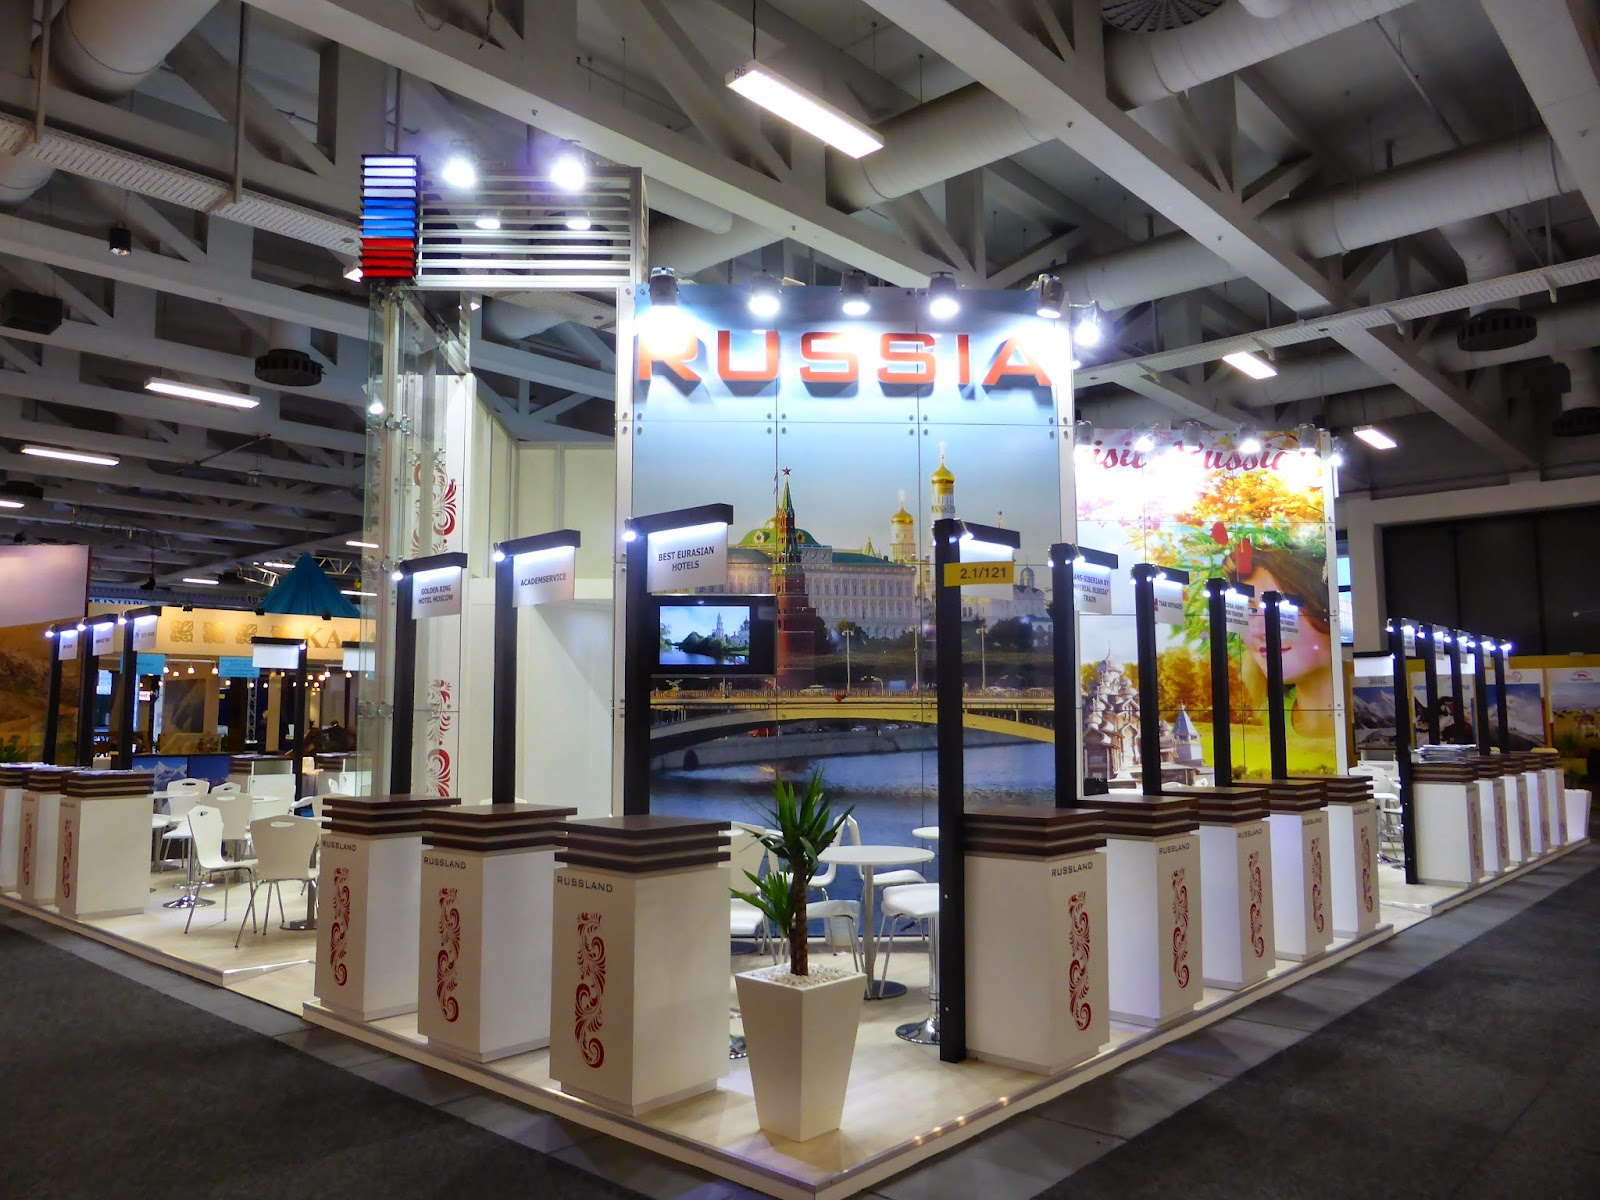 ITB Berlin, Russia stand - 2015